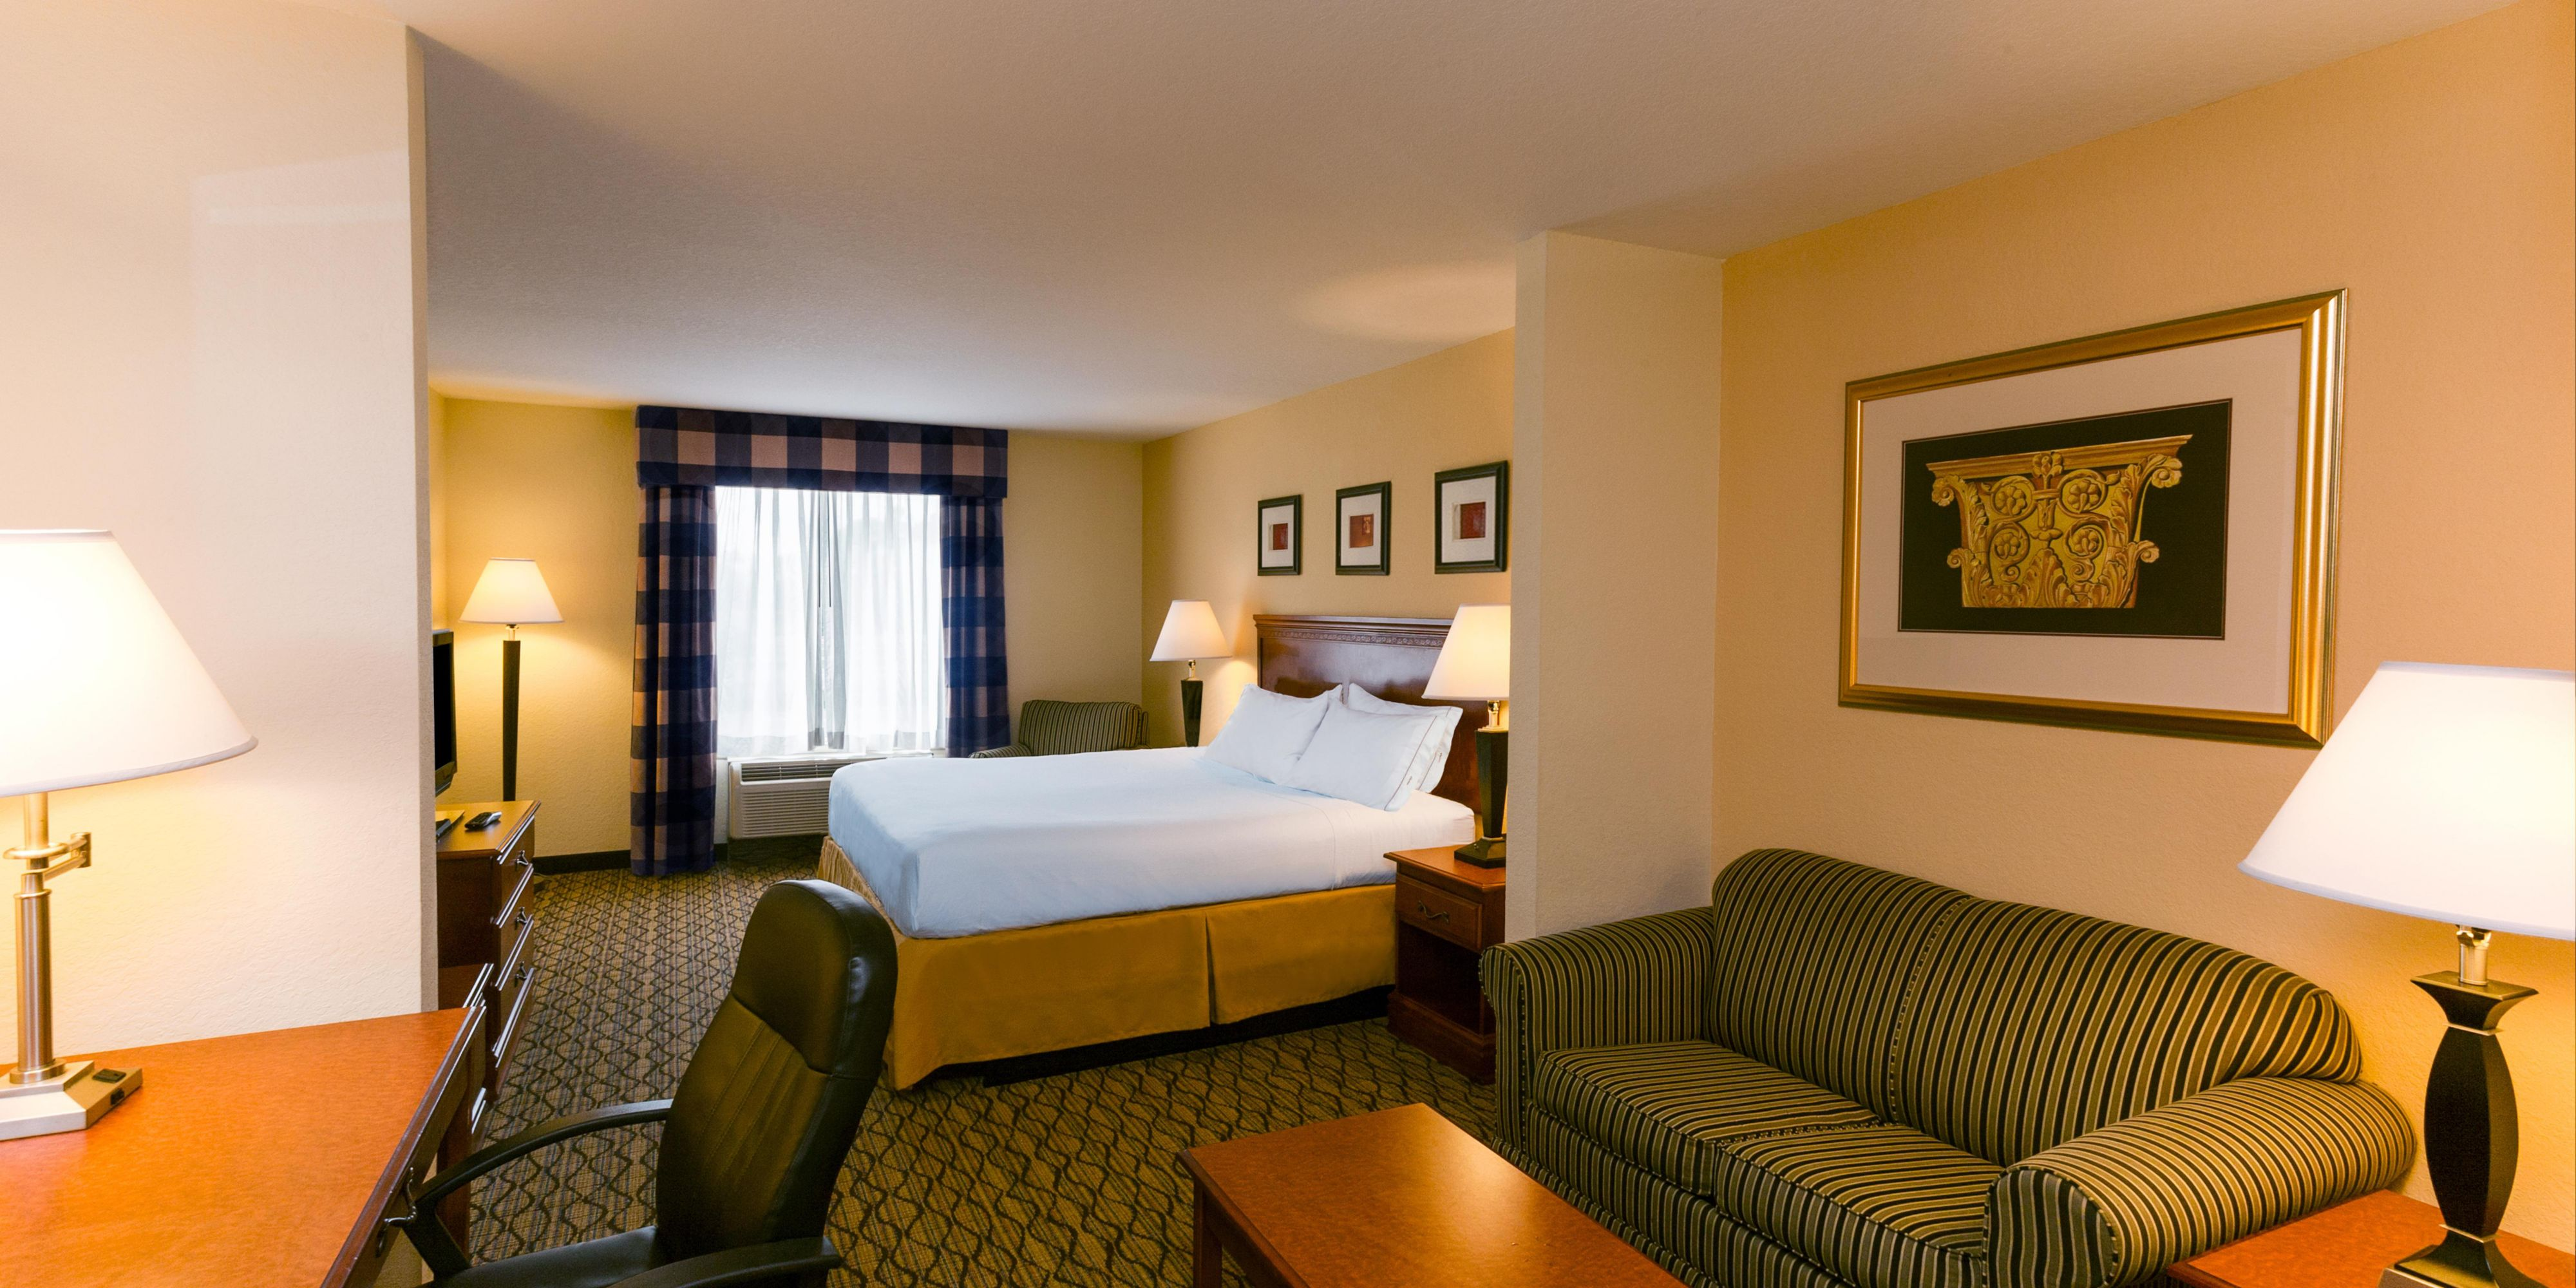 holiday inn express and suites tampa 4120938665 2x1. Holiday Inn Express   Suites Tampa Fairgrounds Casino Hotel by IHG